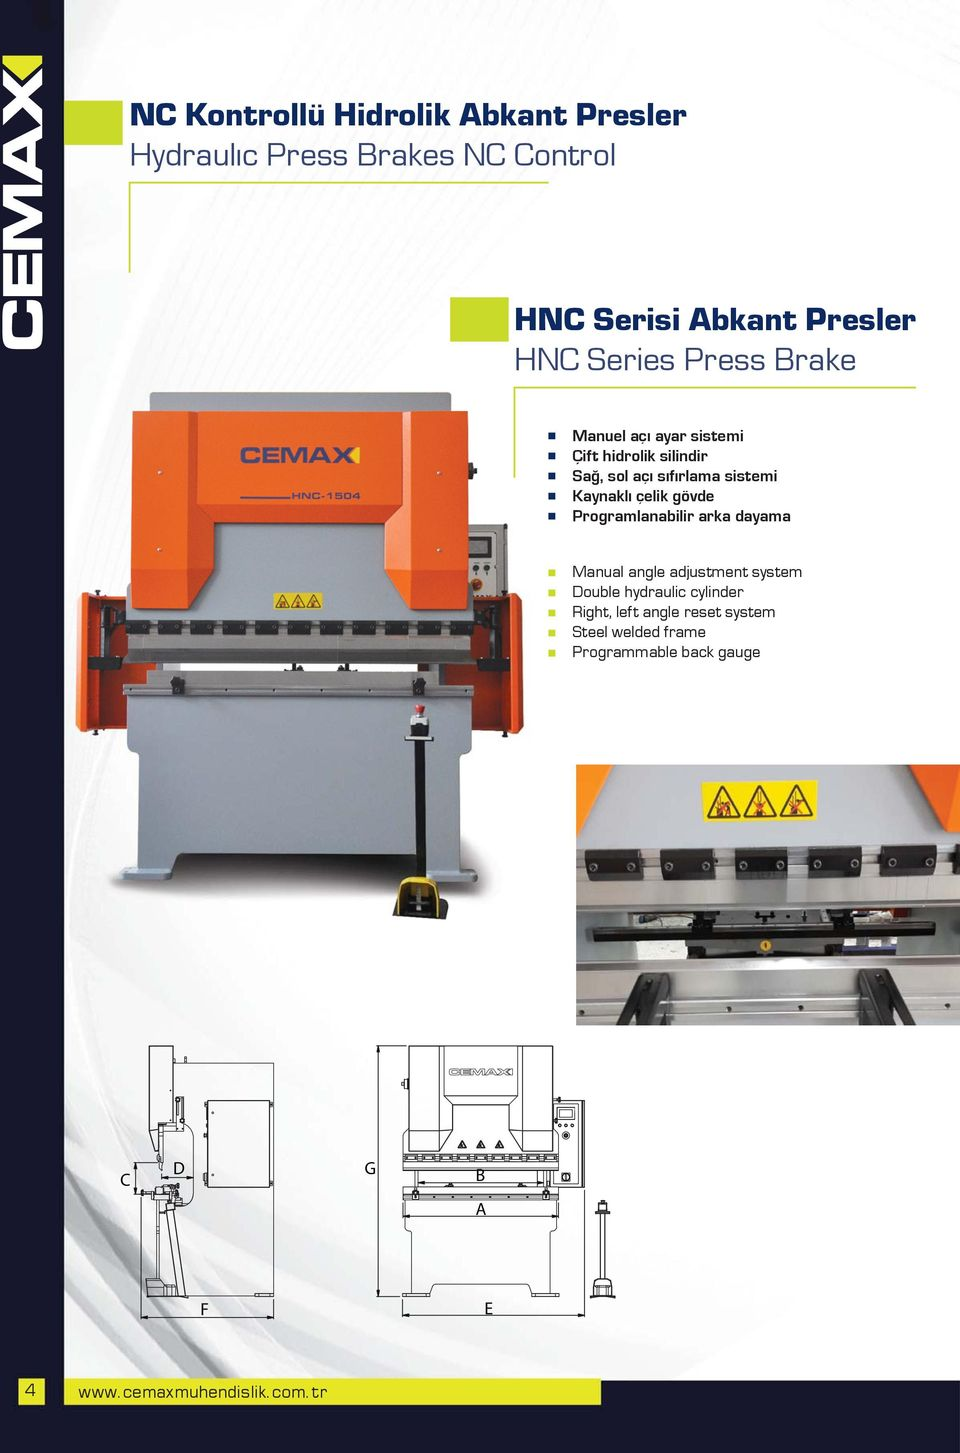 çelik gövde Programlanabilir arka dayama Manual angle adjustment system Double hydraulic cylinder Right,